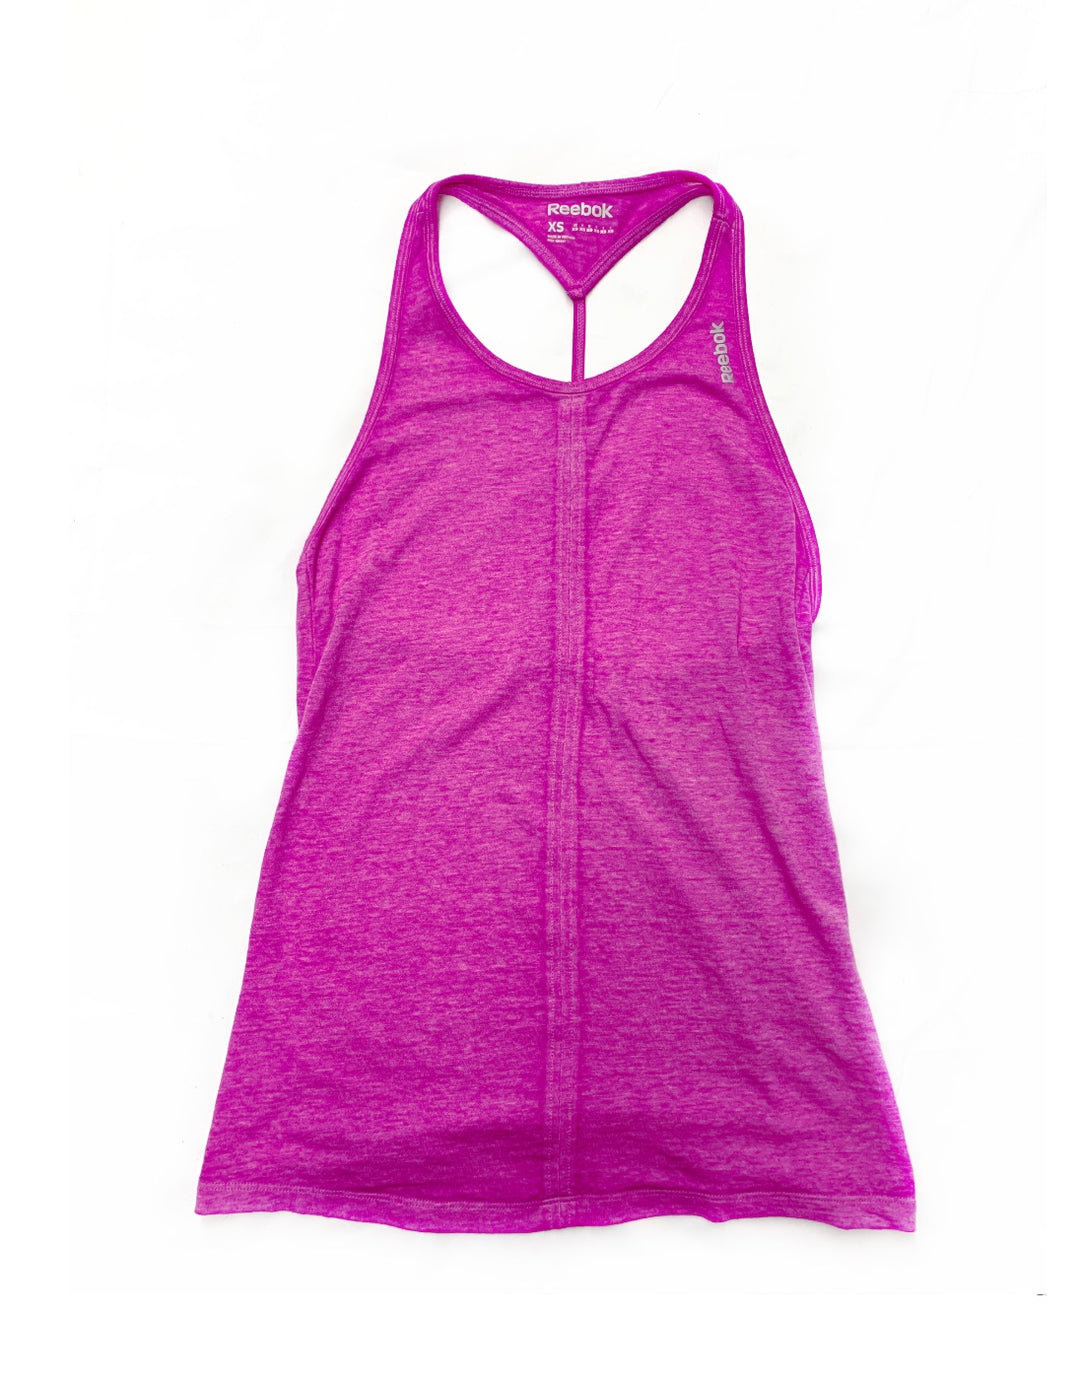 Primary Photo - BRAND: REEBOK<BR>STYLE: ATHLETIC TANK TOP<BR>COLOR: PINK<BR>SIZE: XS<BR>SKU: 196-19681-69916